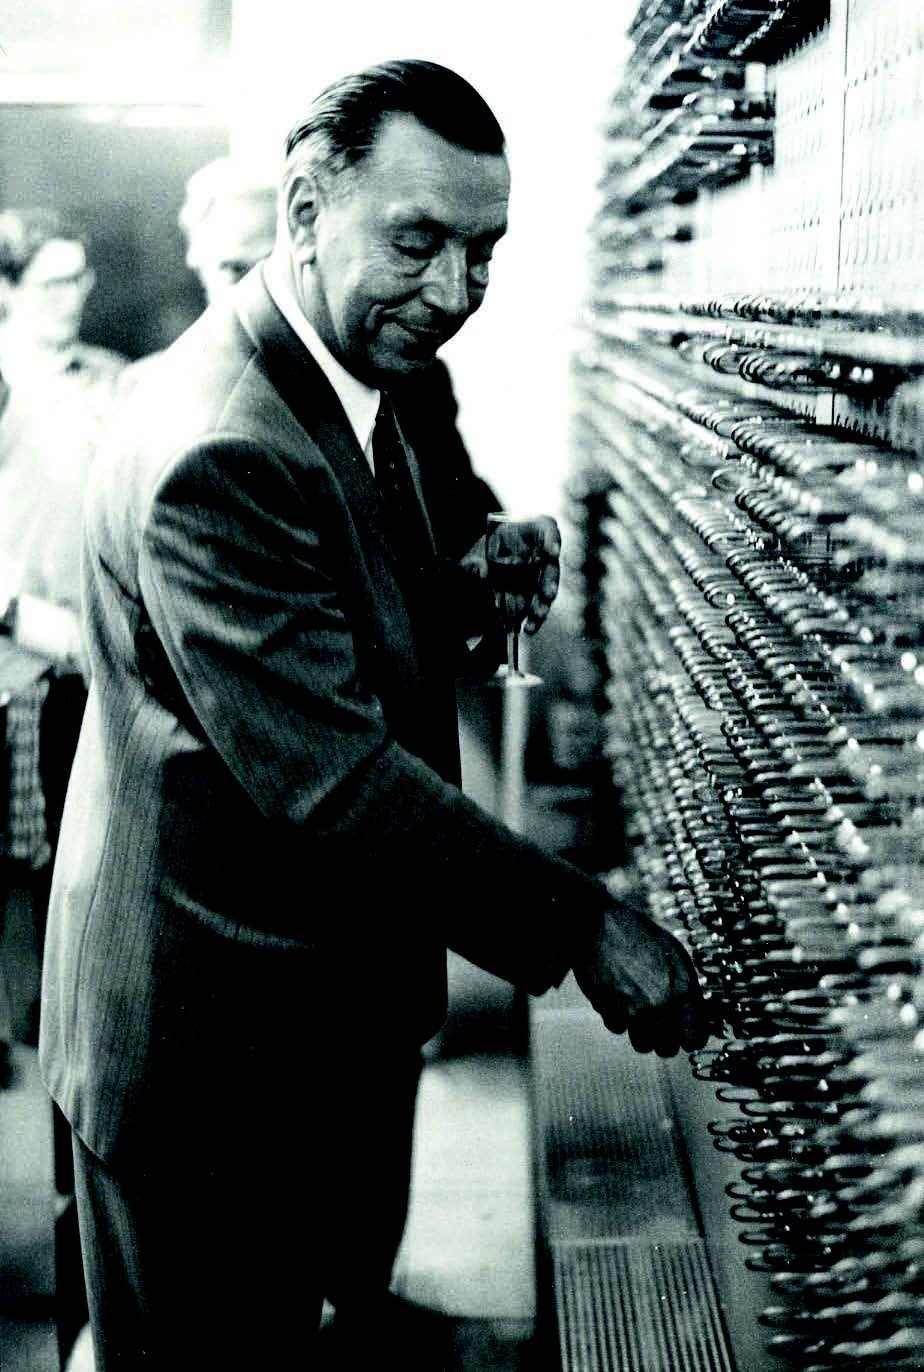 Computer pioneer Heinz Billing with his G3 calculation engine being decommissioned after 12 years of operation in 1972.